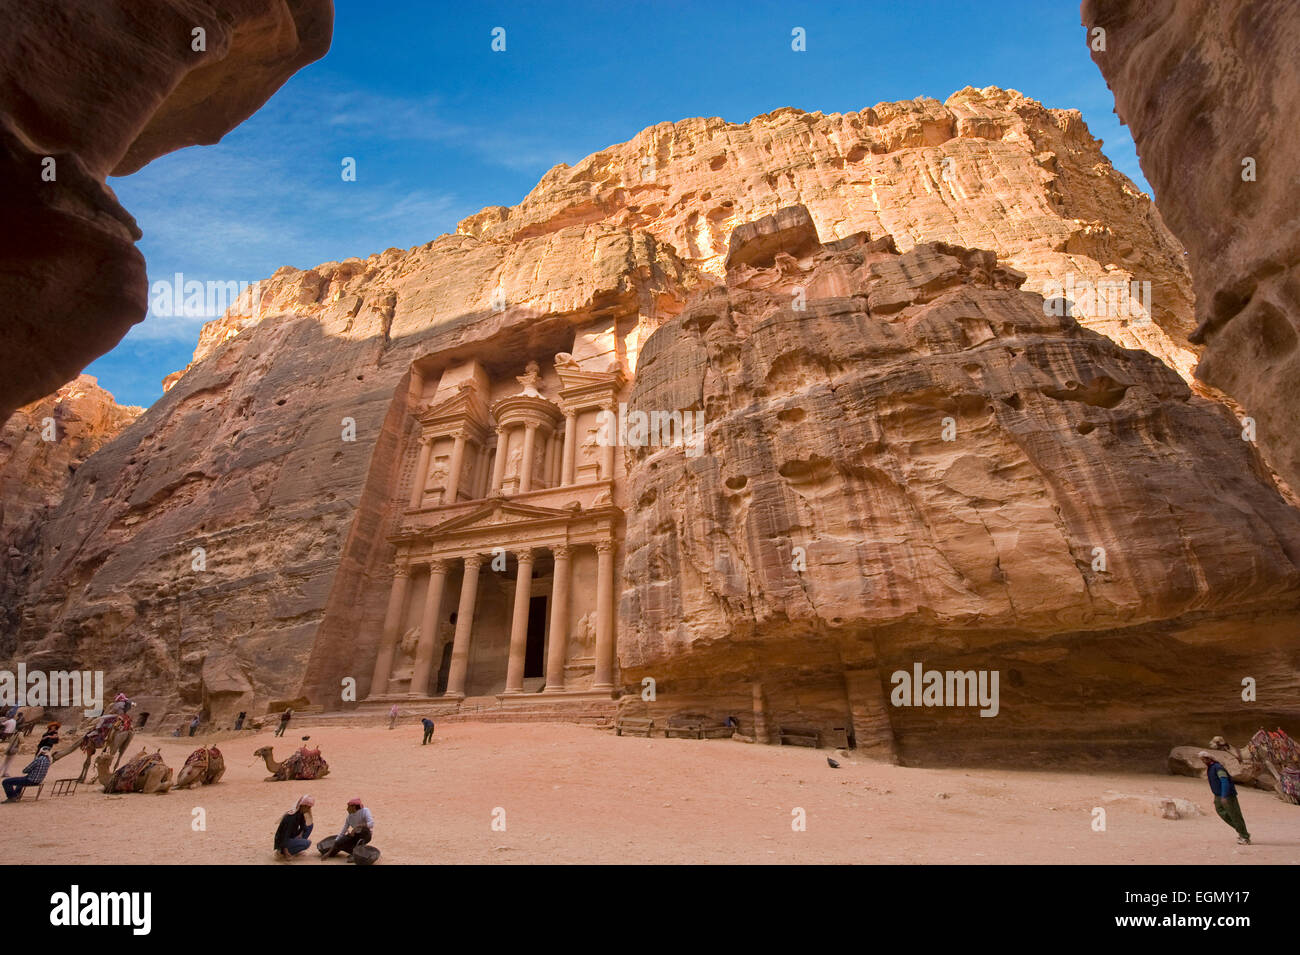 The treasury is also called Al Khazna, it is the most magnificant and famous facade in Petra Jordan - Stock Image